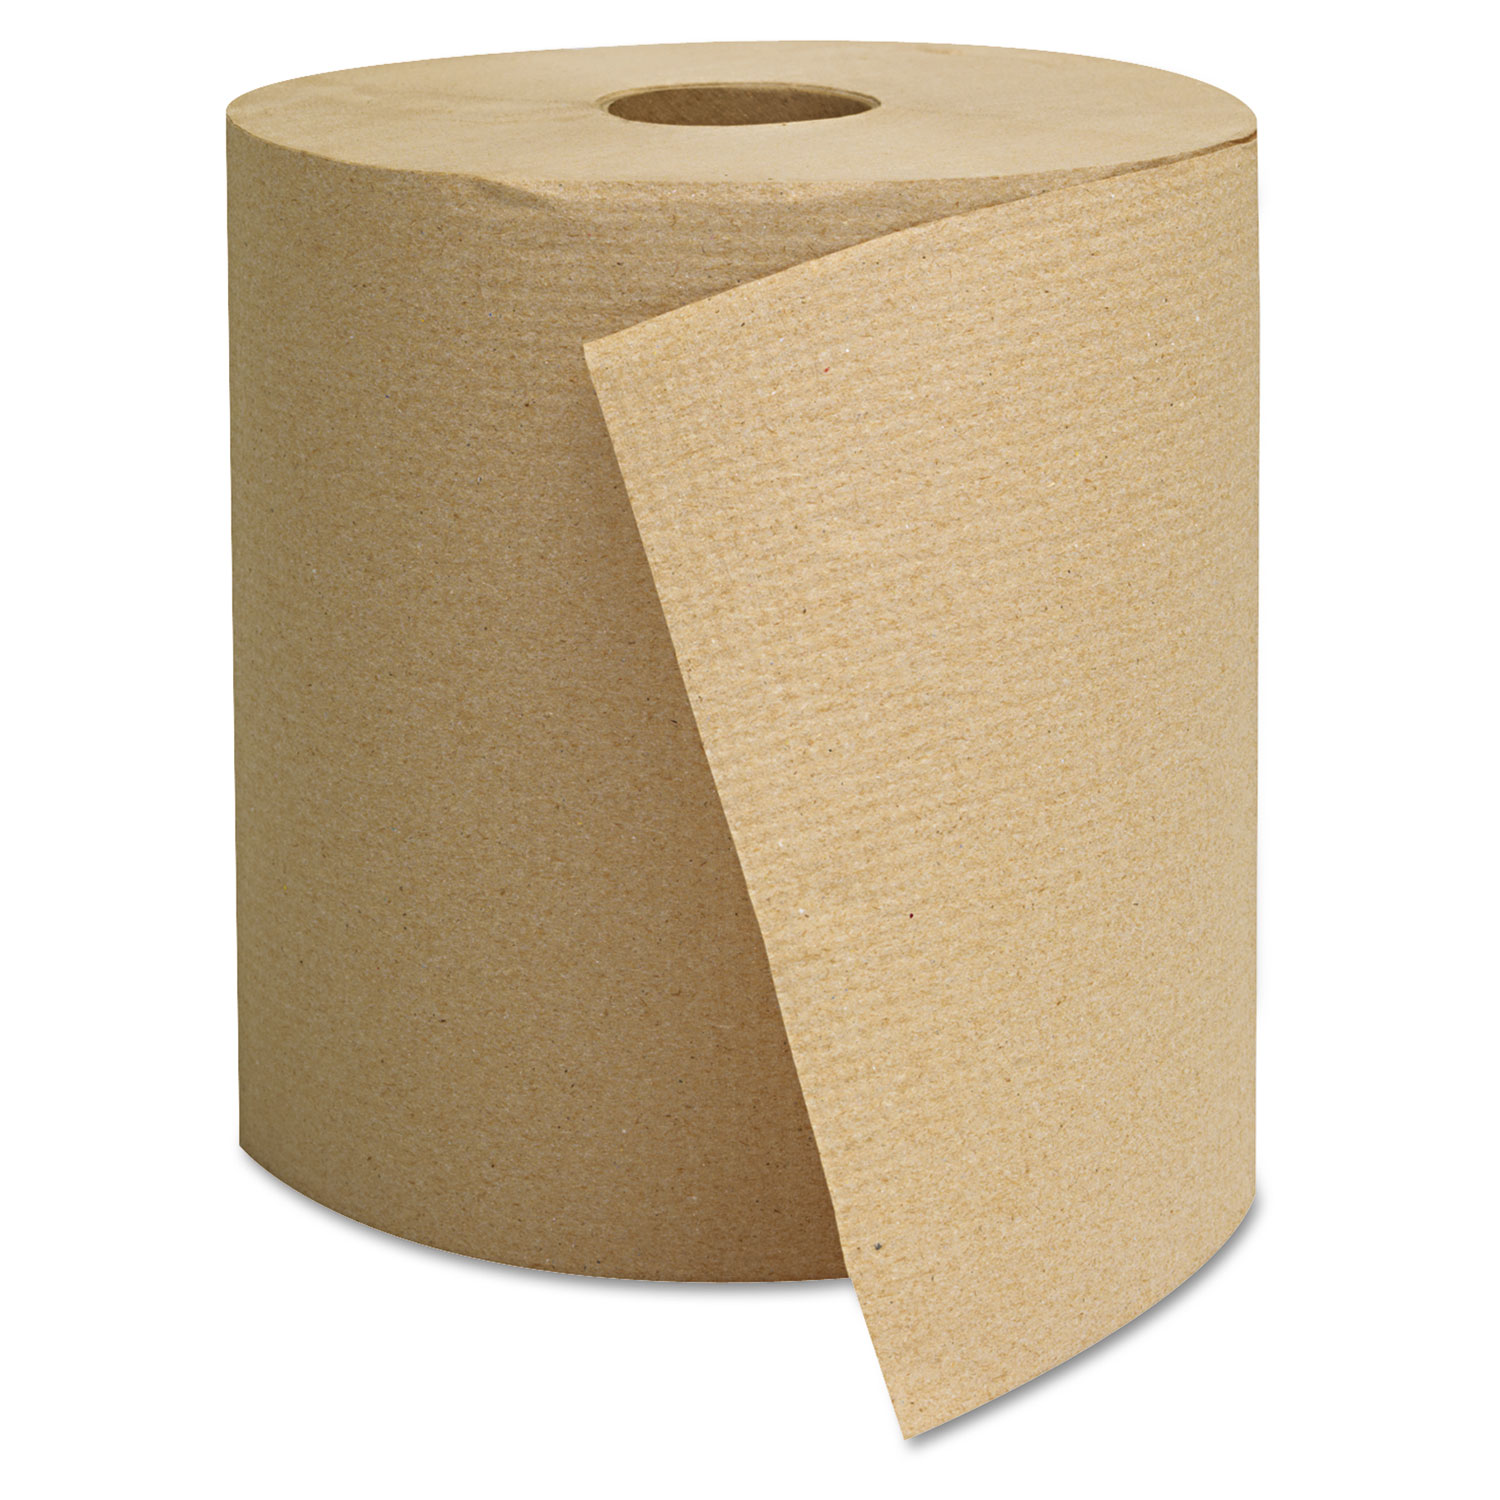 General Supply Hardwound Towels, Brown, 800ft, 6 Rolls/Case - GEN1825